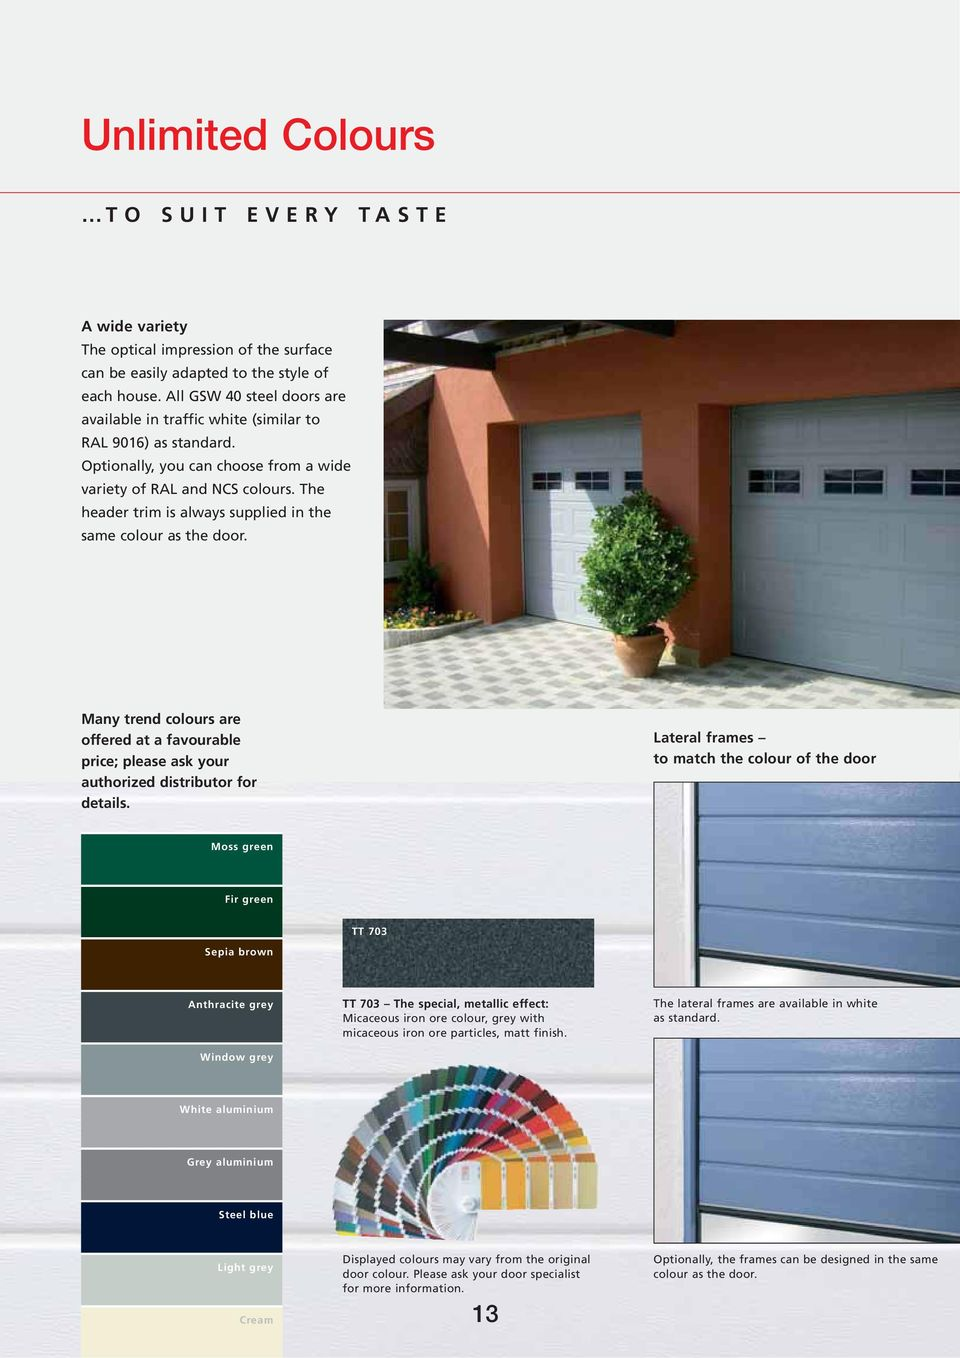 The header trim is always supplied in the same colour as the door. Many trend colours are offered at a favourable price; please ask your authorized distributor for details.